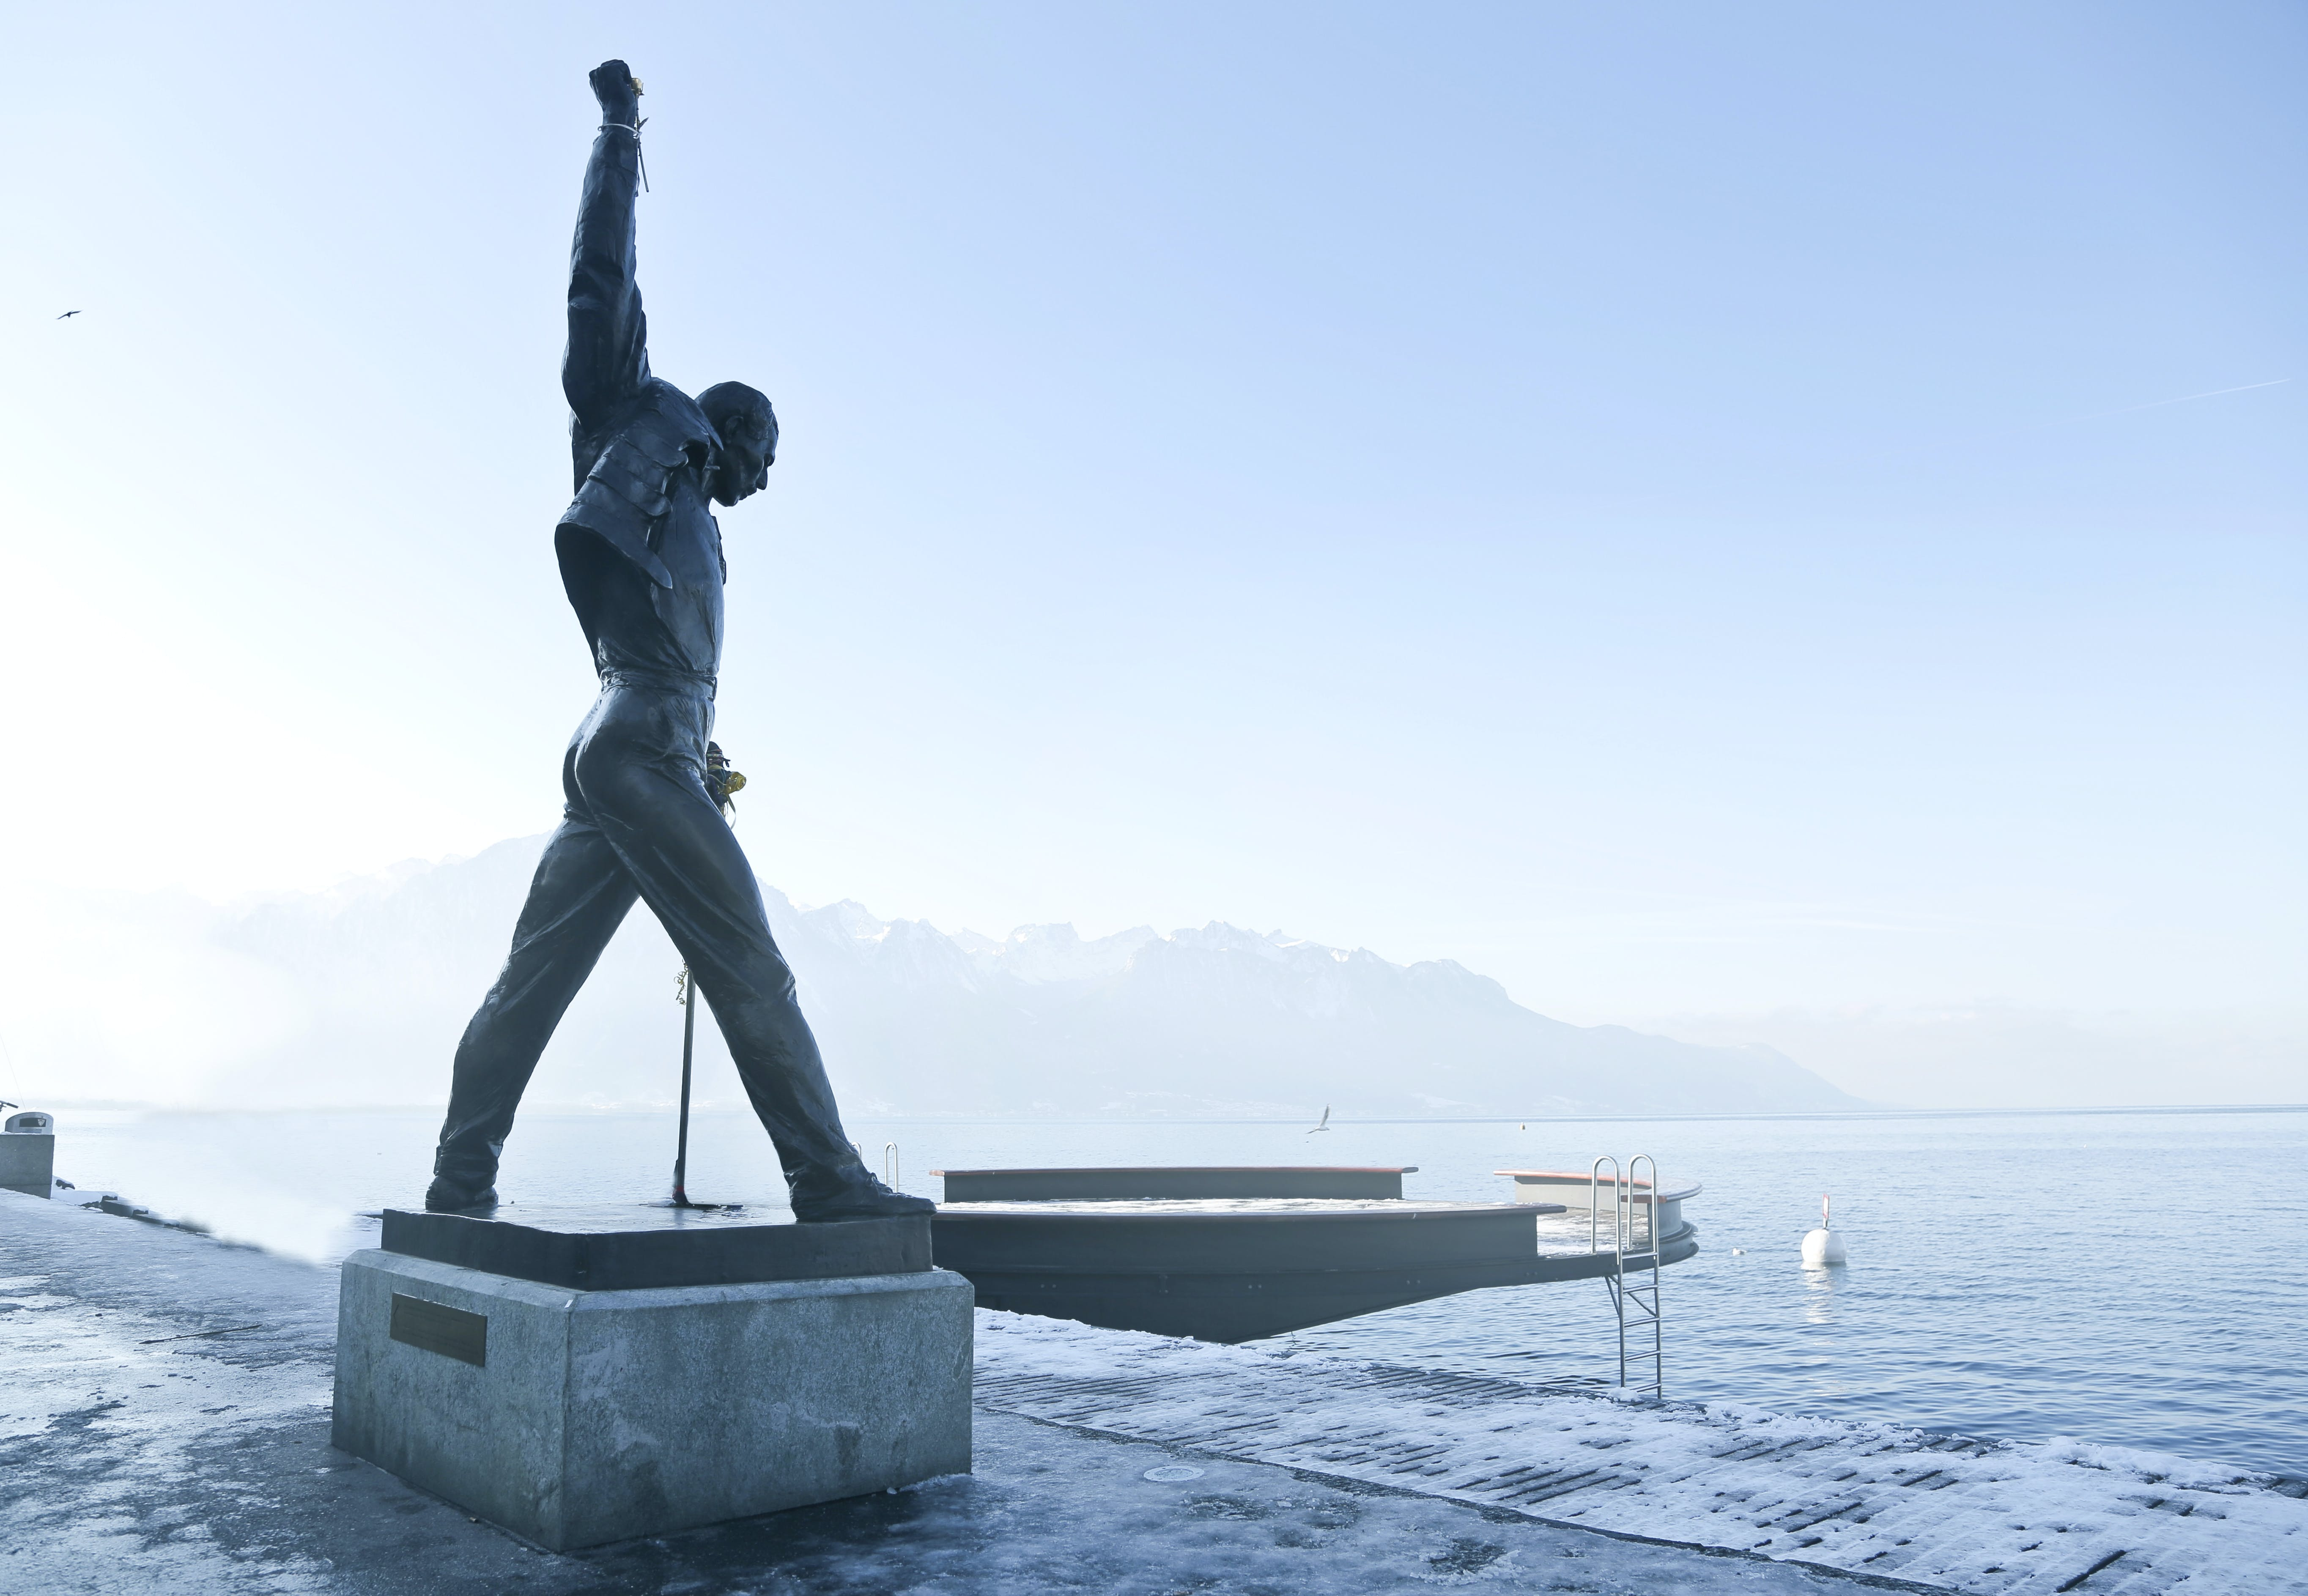 Gray Metal Statue of Man Raising Hand Near Dock